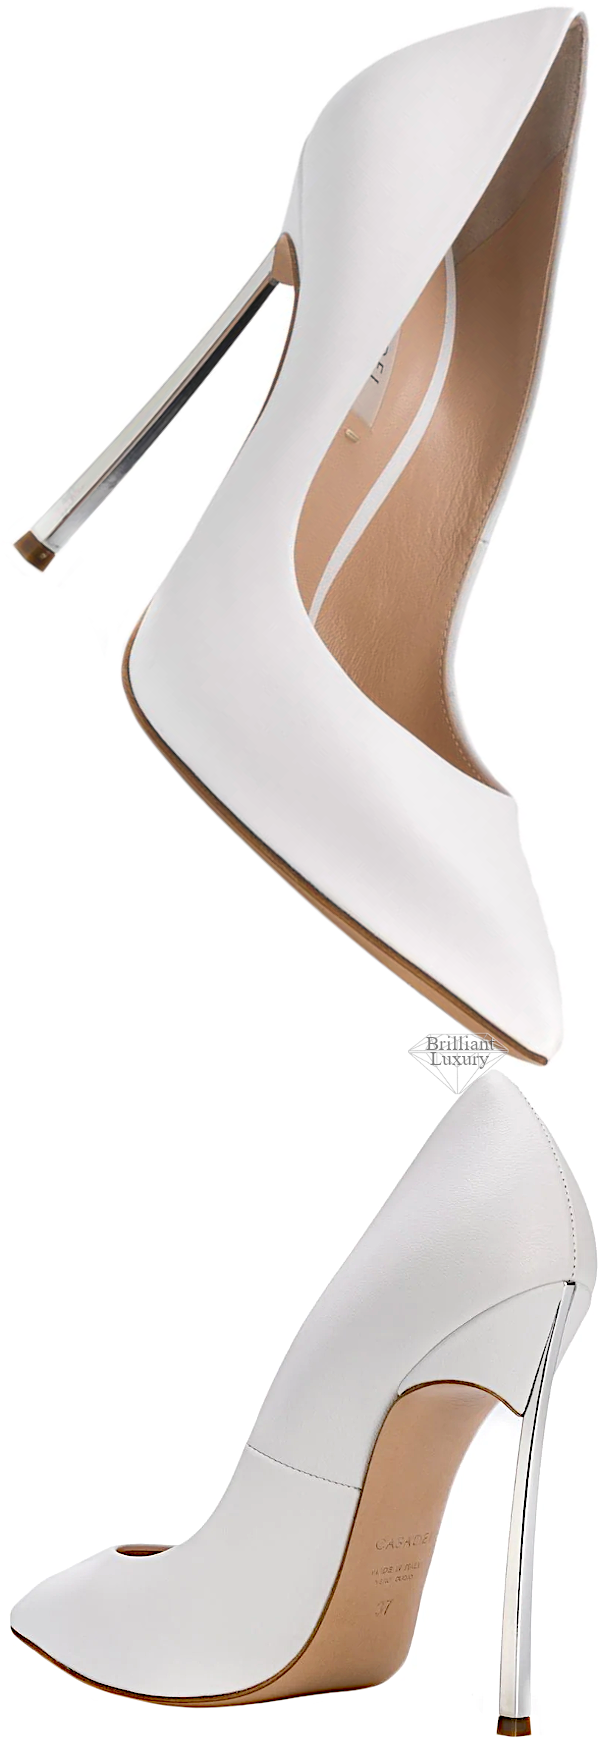 Casadei white pointed-toe stiletto pumps #brilliantluxury